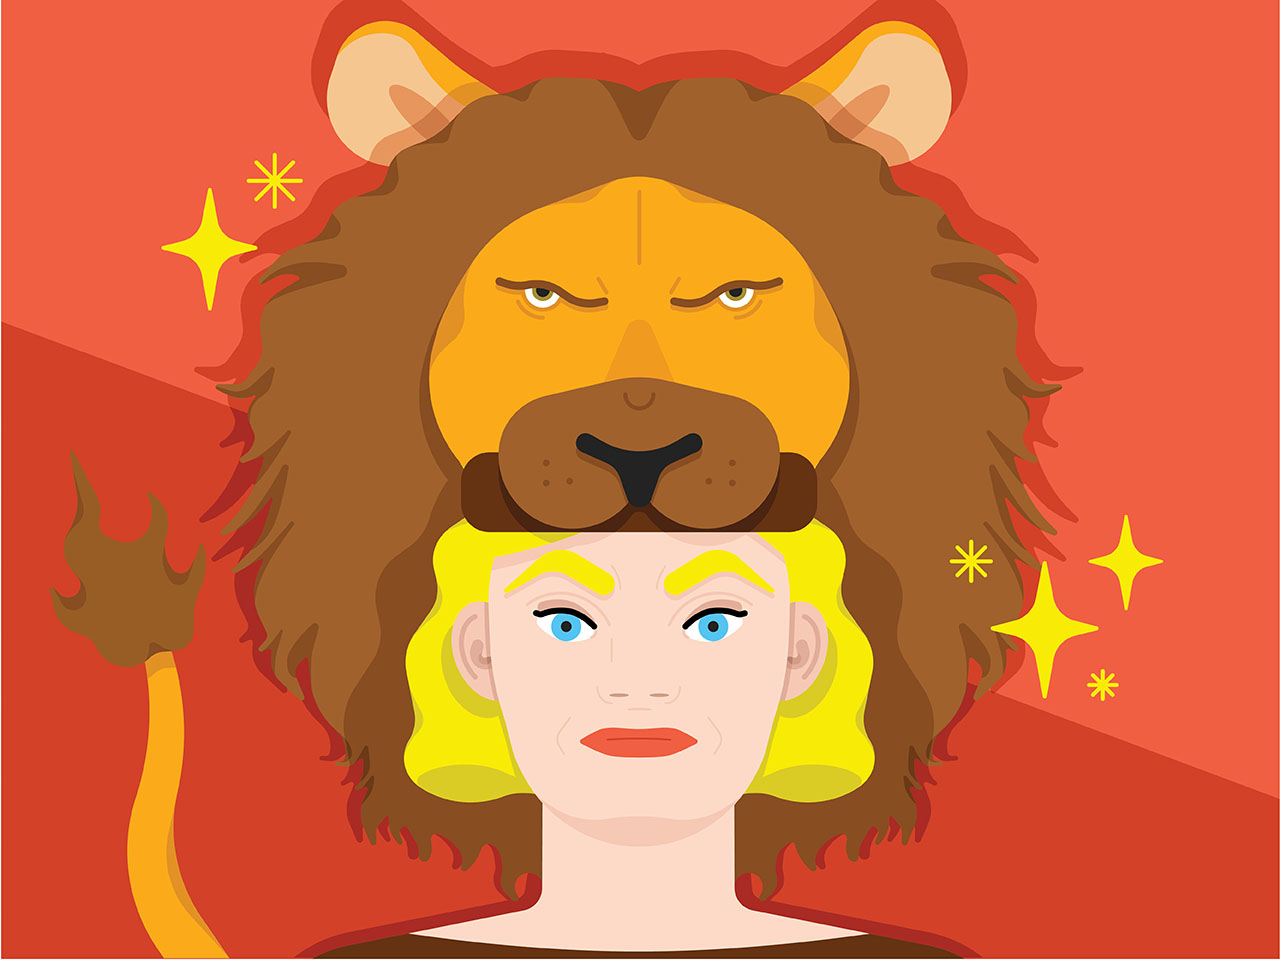 Illustration of woman wearing a lion hat symbolizes the horoscope sign for Leo.